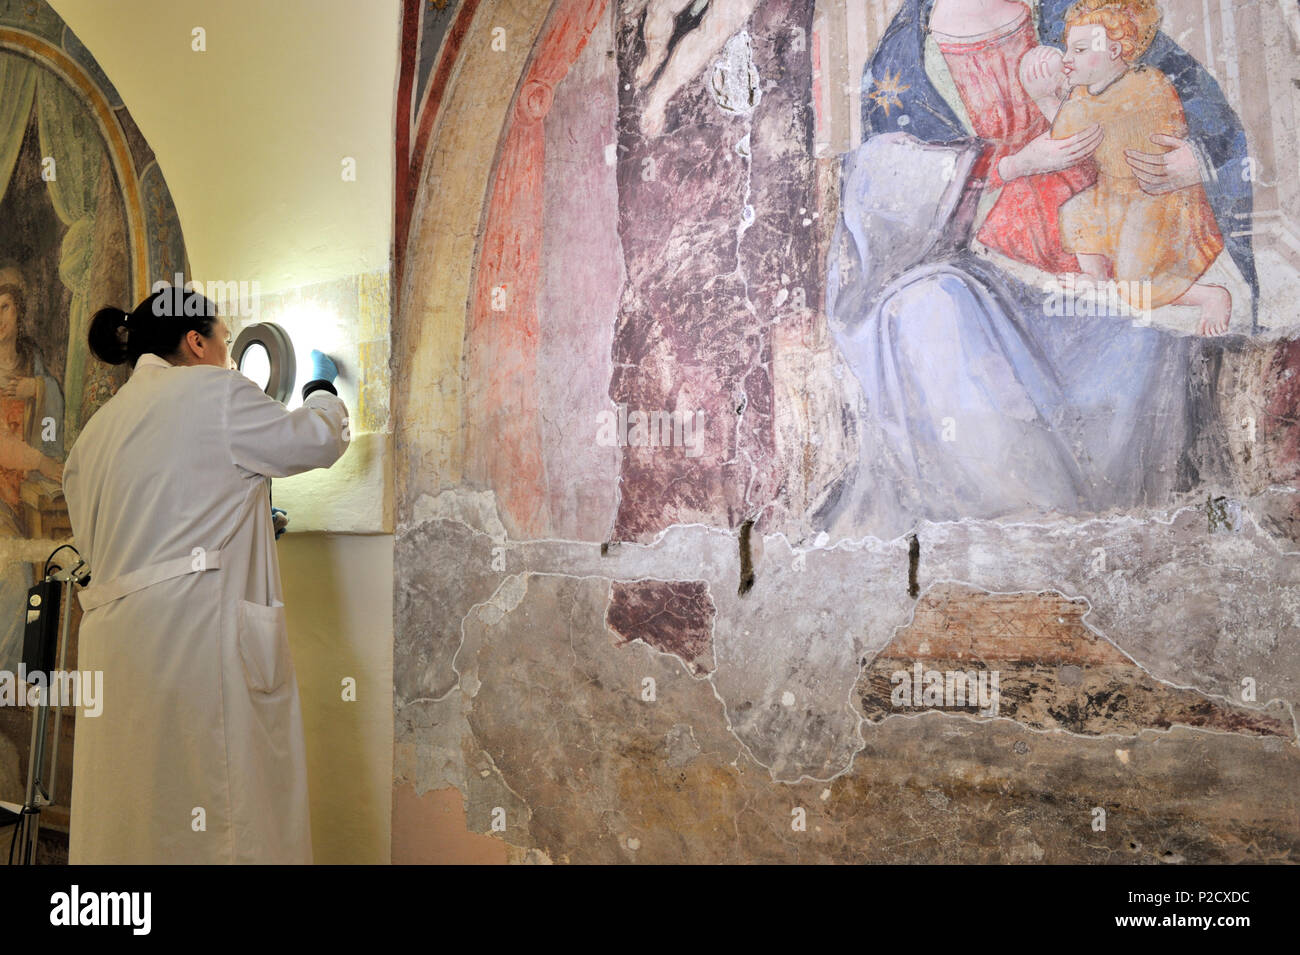 restorations of the frescos (16th century), on the right Madonna del Latte (14th century) in the church of Santa Marta al Collegio Romano, Rome, Italy Stock Photo